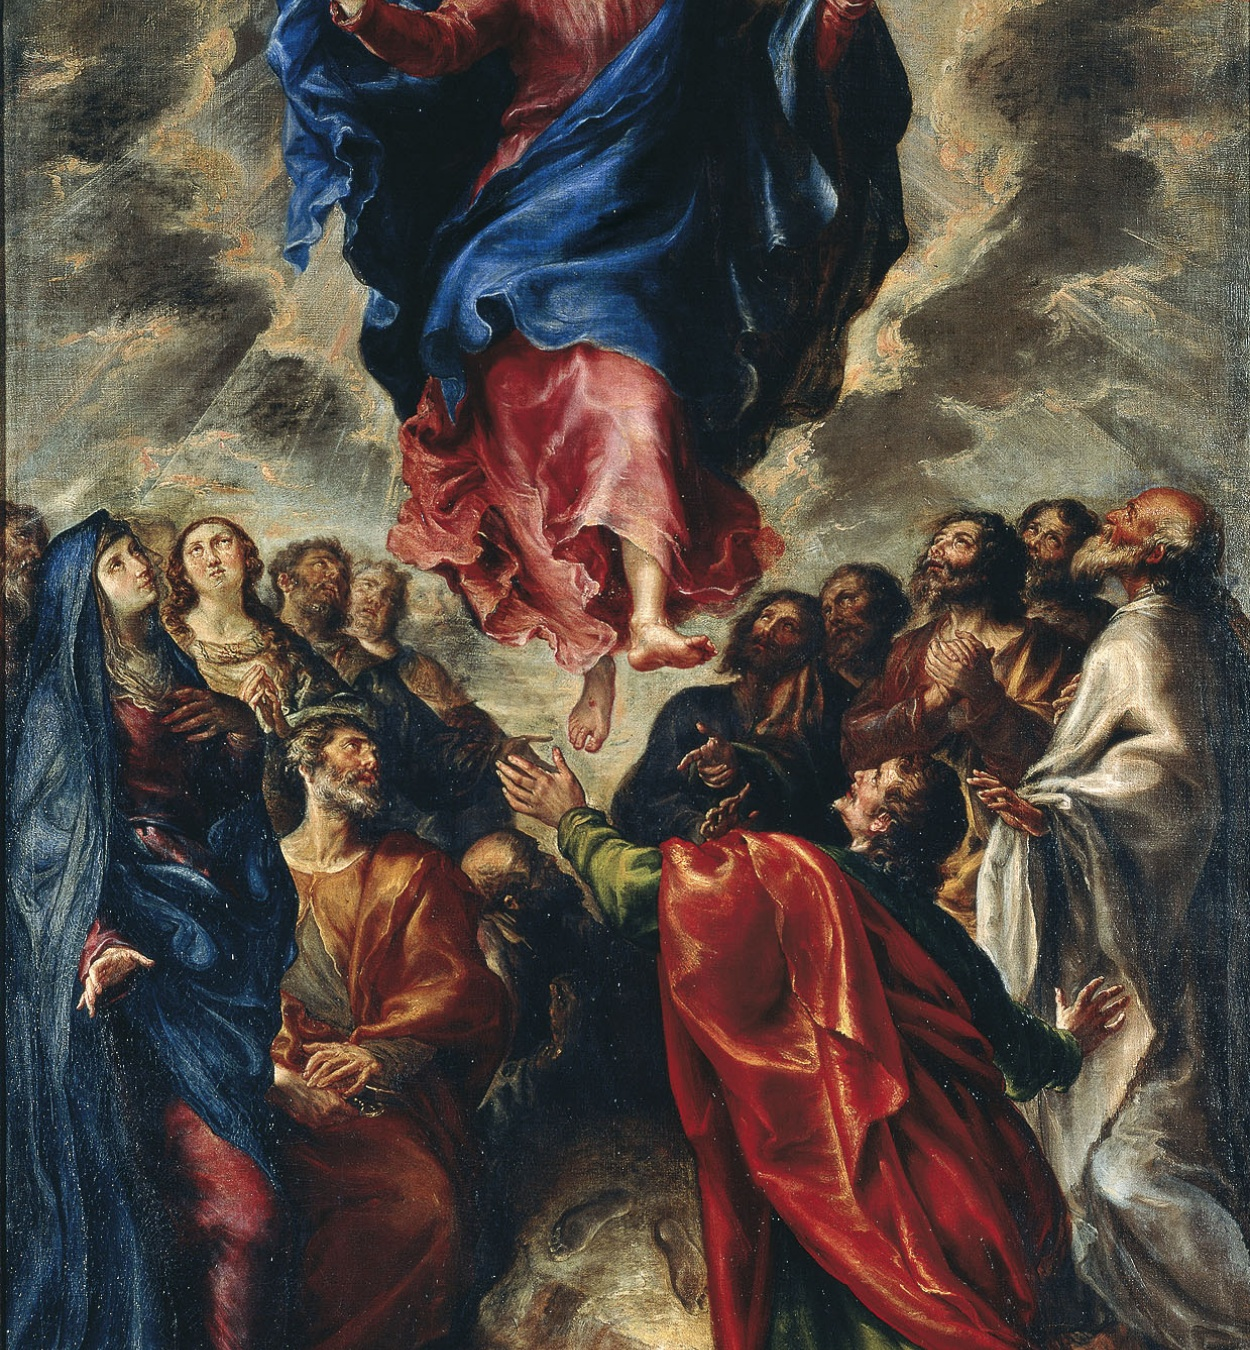 Francisco Camilo - Ascensió - 1651